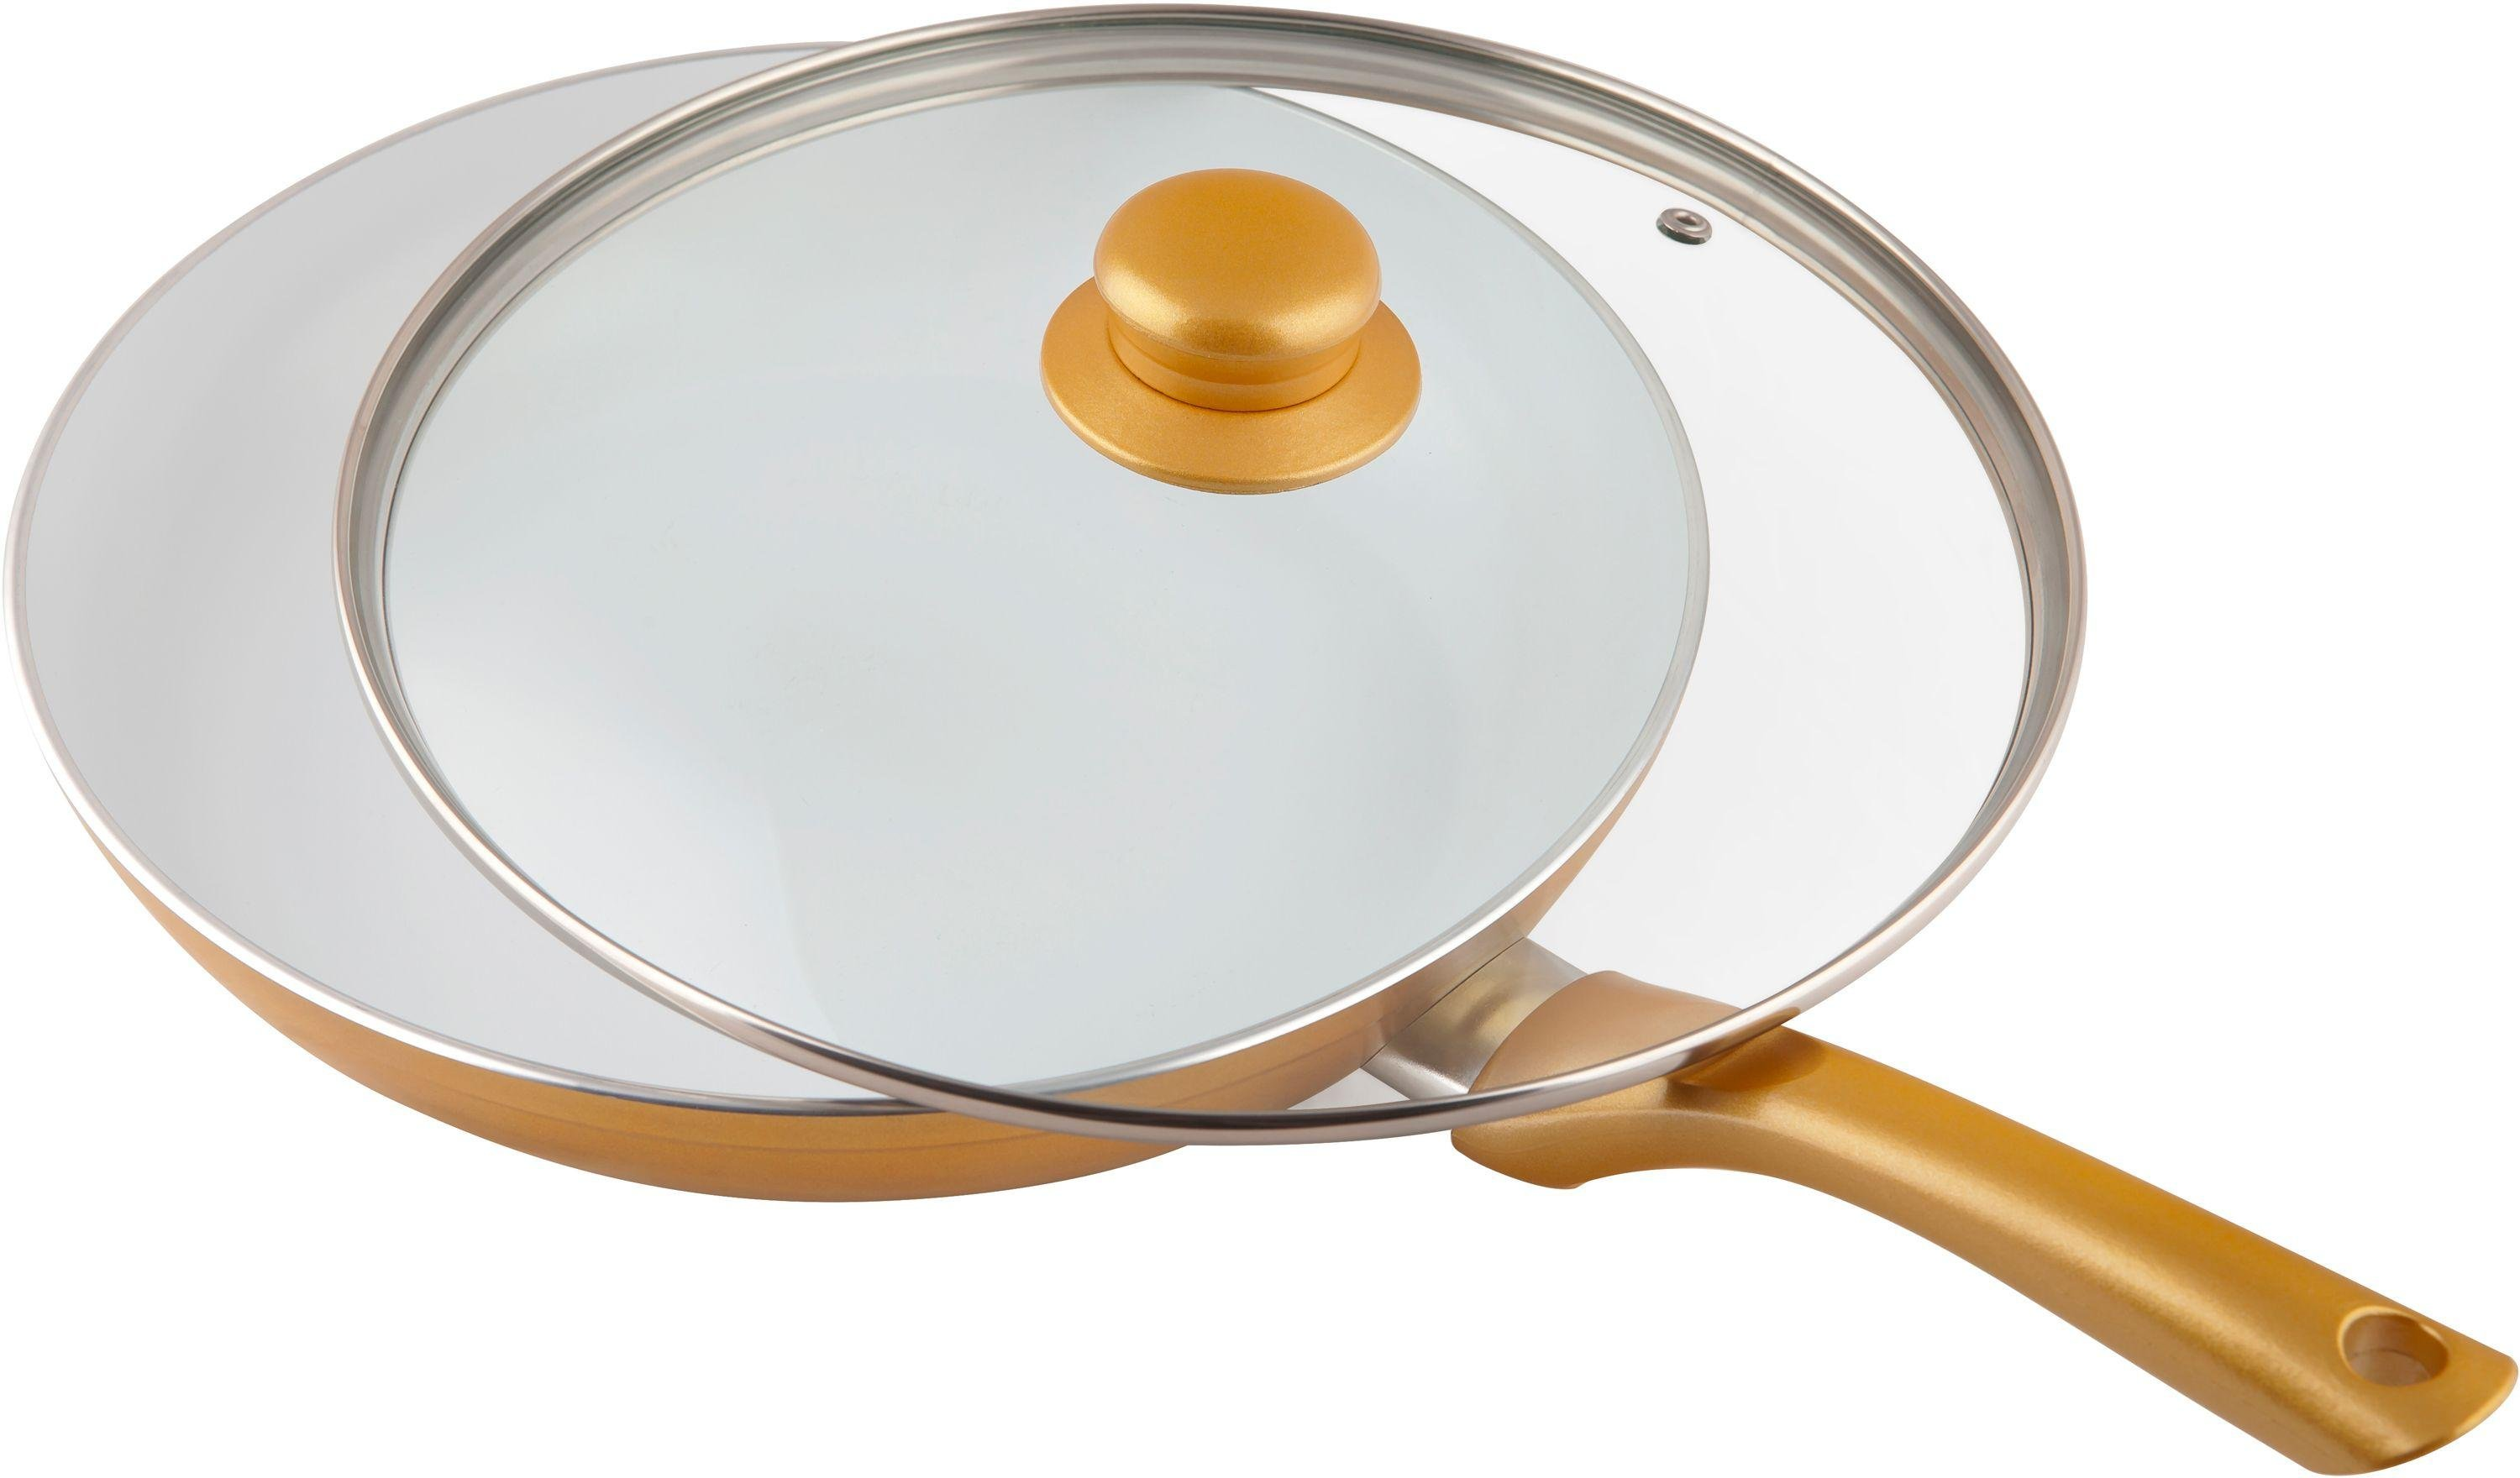 Ceramicore 24cm Gold Frying Pan With Lid For Only 163 29 99